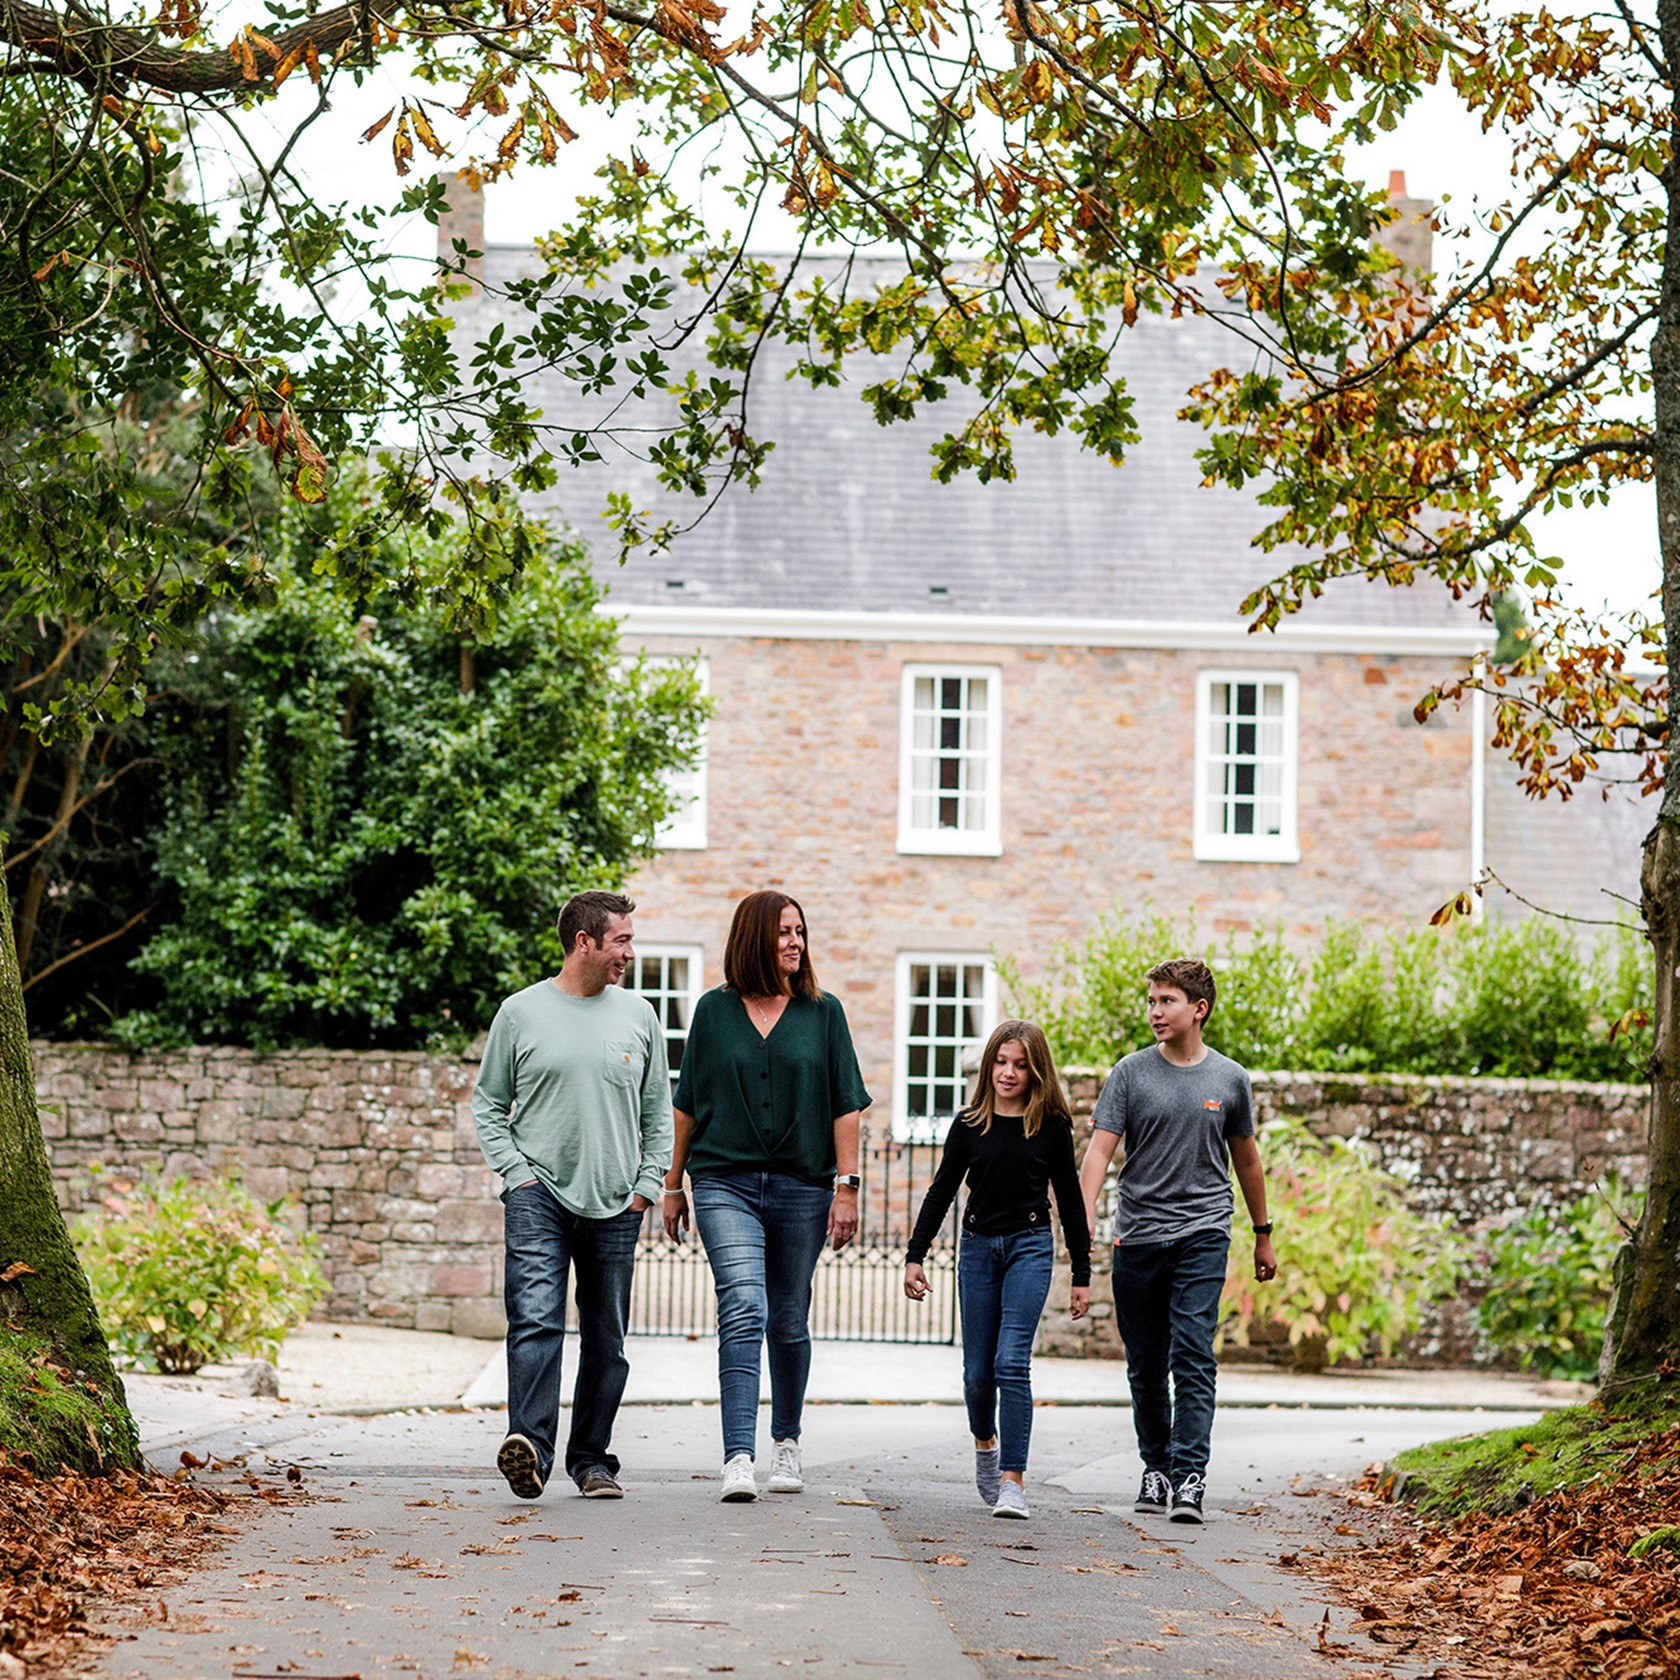 A family walk past a period house in the Jersey countryside.